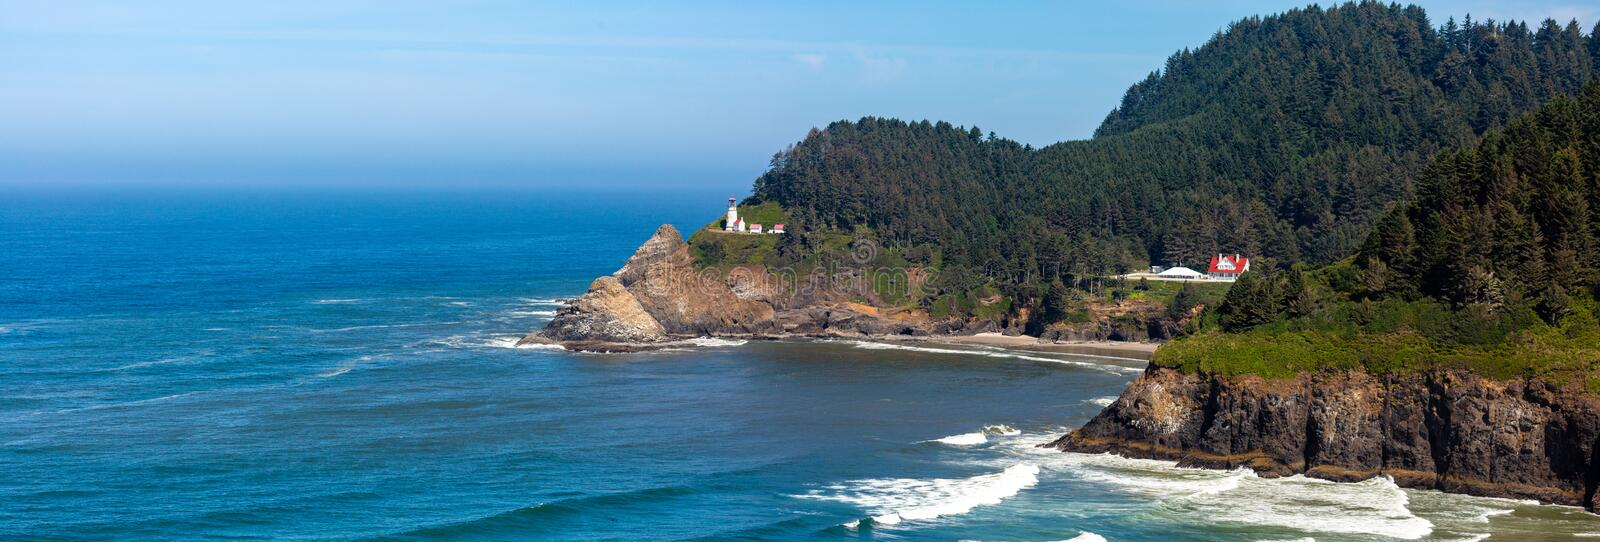 Heceta Head Lighthouse  between Yachats and Florence Oregon on the Pacific Ocean in August, panoramic royalty free stock images